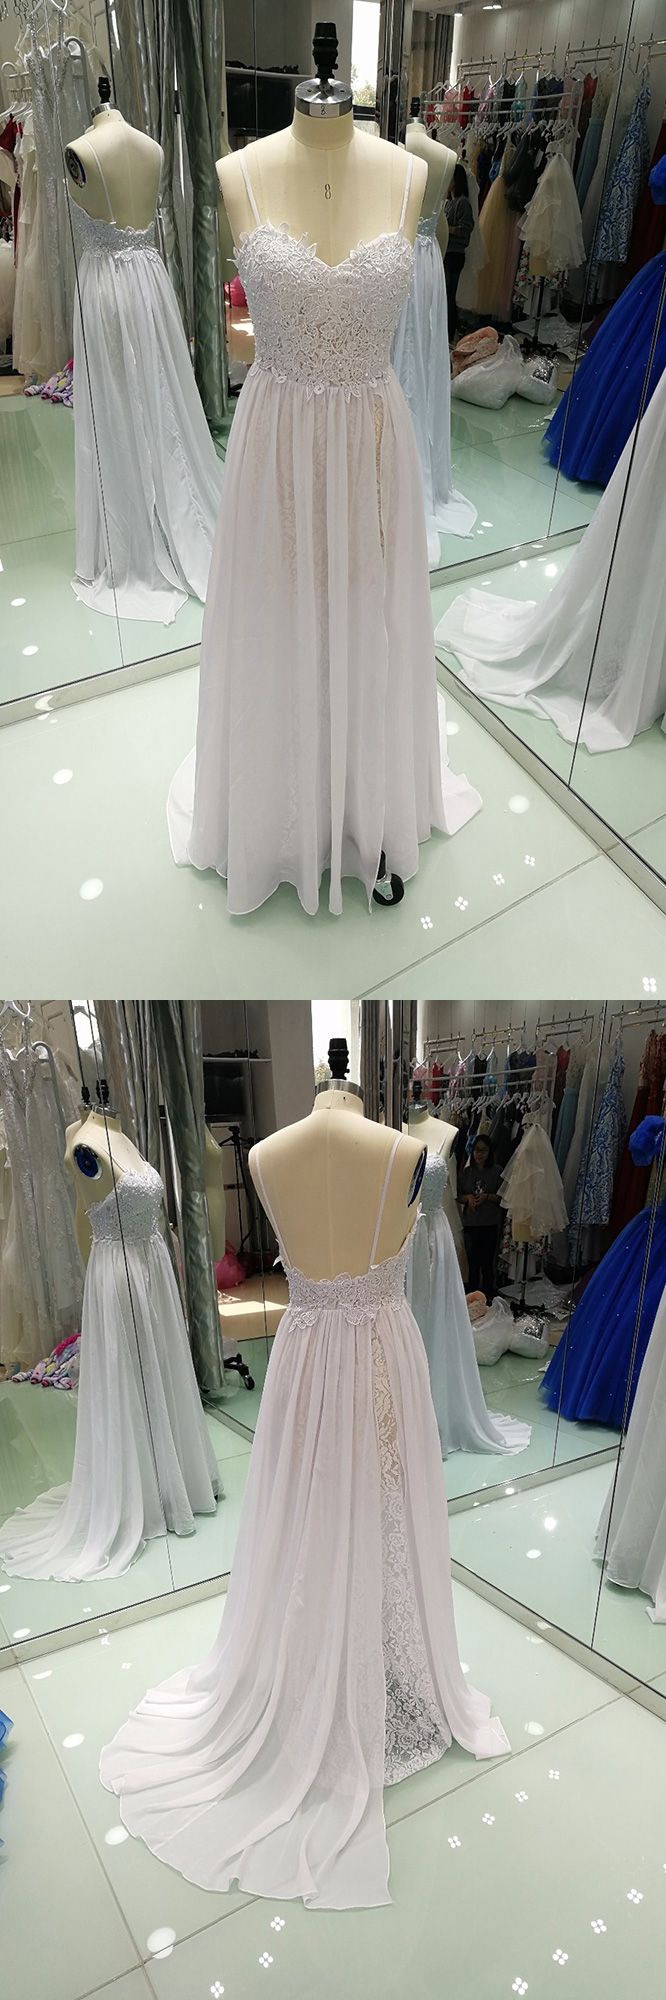 Only $168.99, Beach Wedding Dresses Backless Lace Beach Wedding Dress Boho With Slit Destination Weddings #E7942 at #GemGrace. View more special Beach Wedding Dresses,Sexy Wedding Dresses,Boho Wedding Dresses now? GemGrace is a solution for those who want to buy delicate gowns with affordable prices, a solution for those who have unique ideas about their gowns. 2018 new arrivals, shop now to get $10 off!